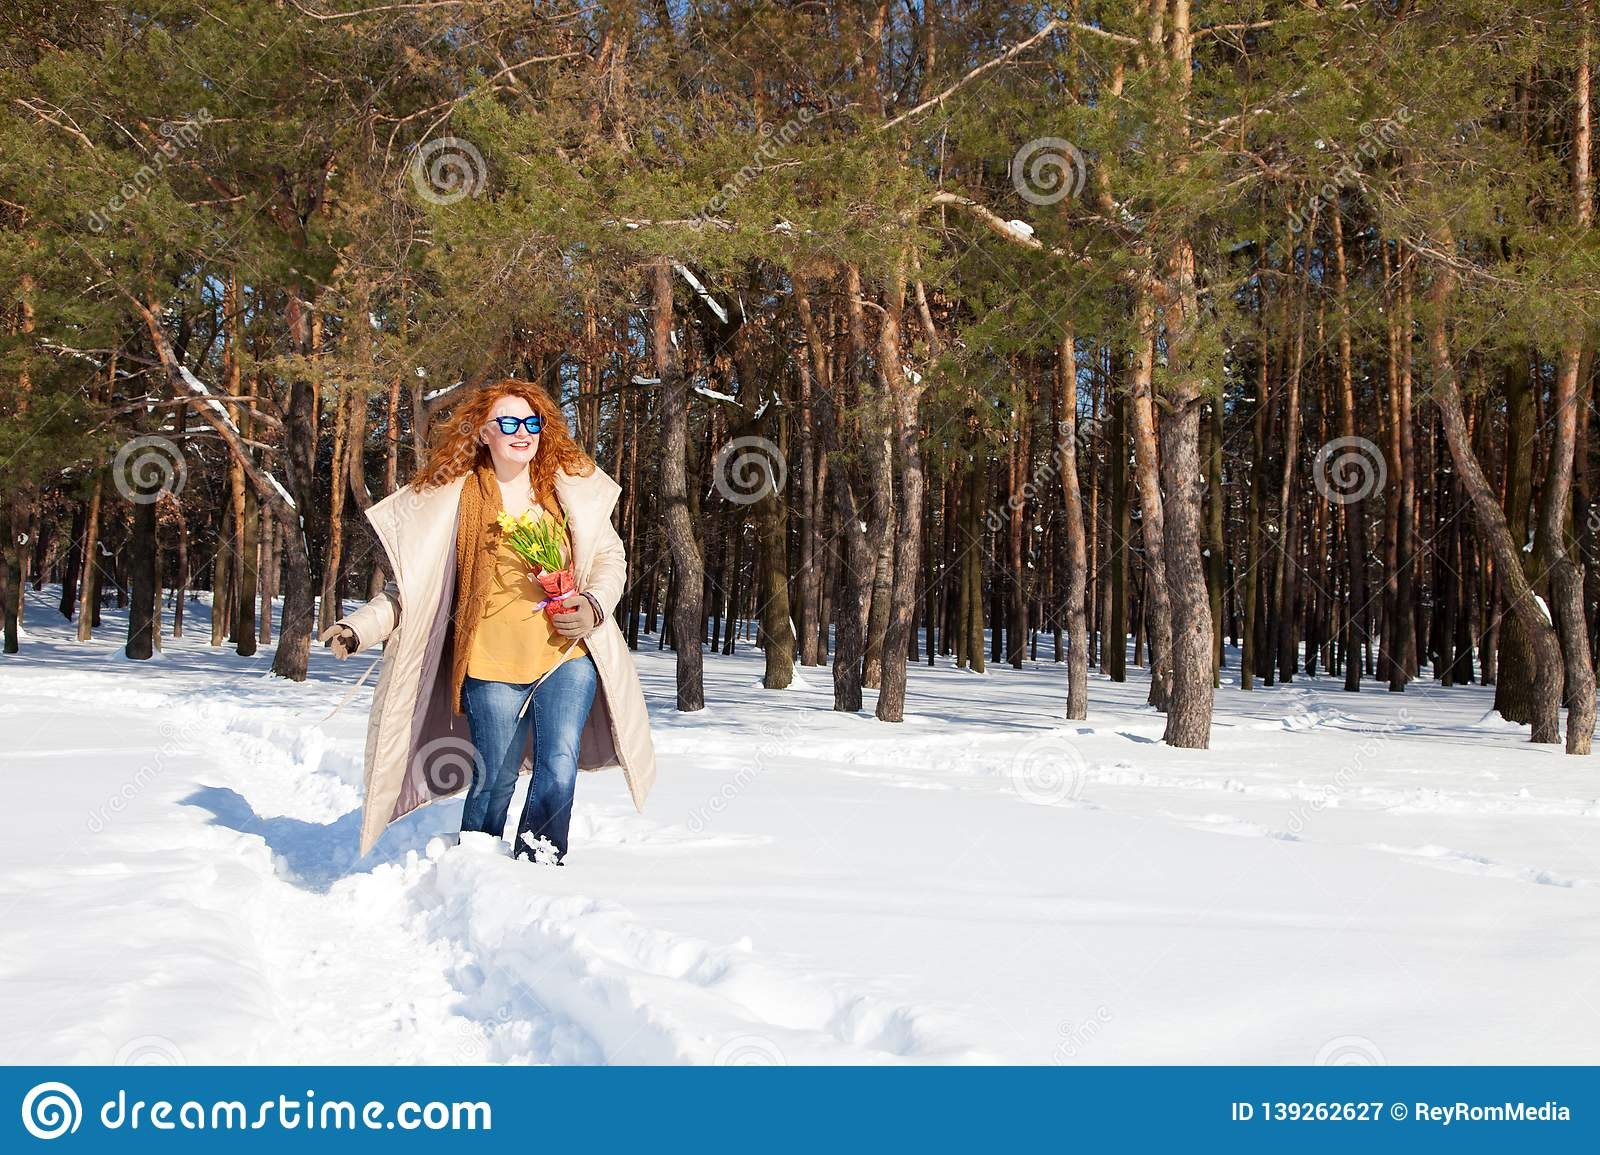 Smiling joyful woman walking through snowdrifts with forest on the background